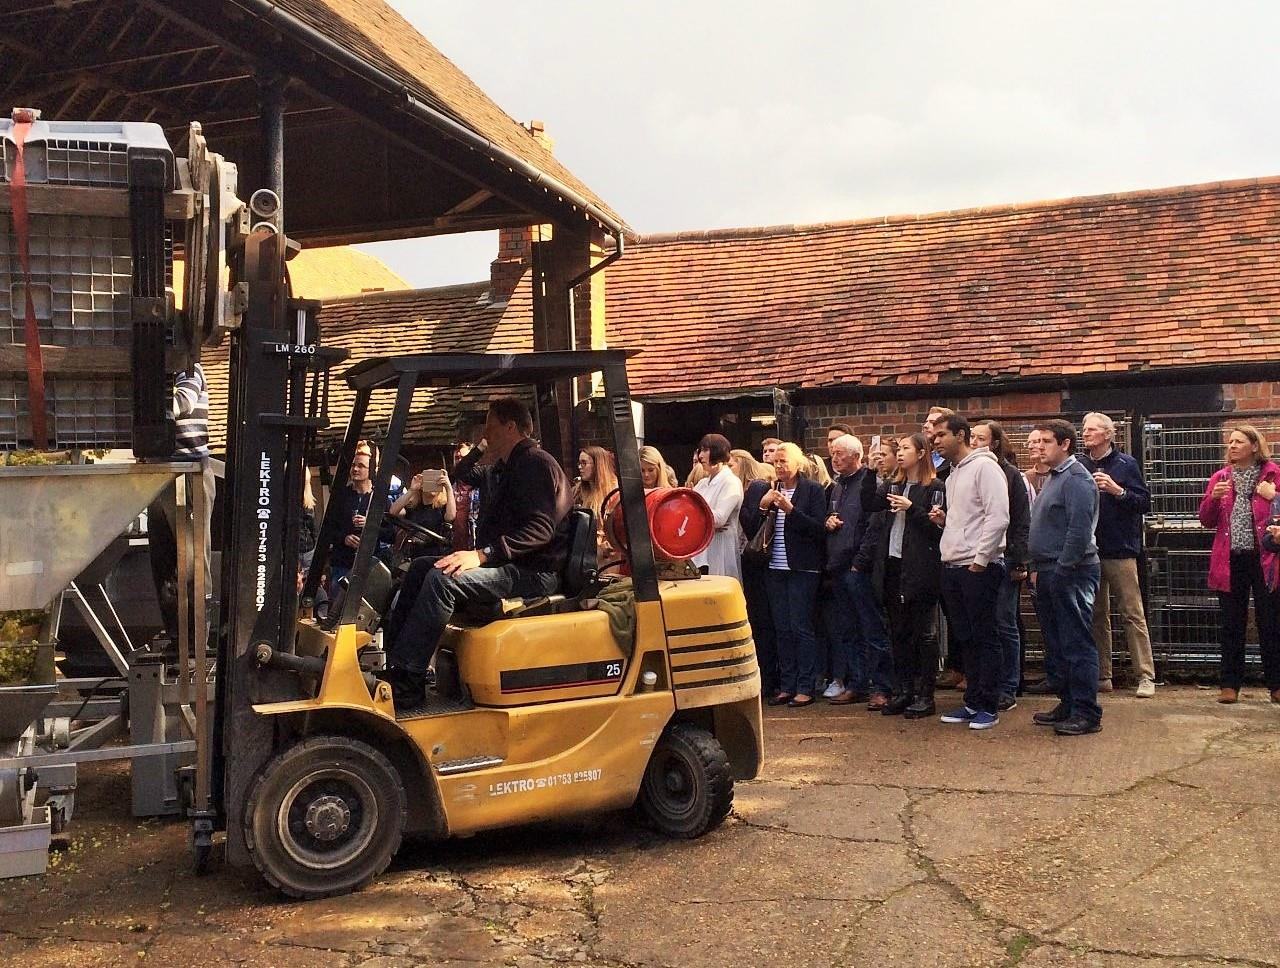 Sunday 8th November 2020 at 2 pm - Vineyard Tour & Wine Tasting